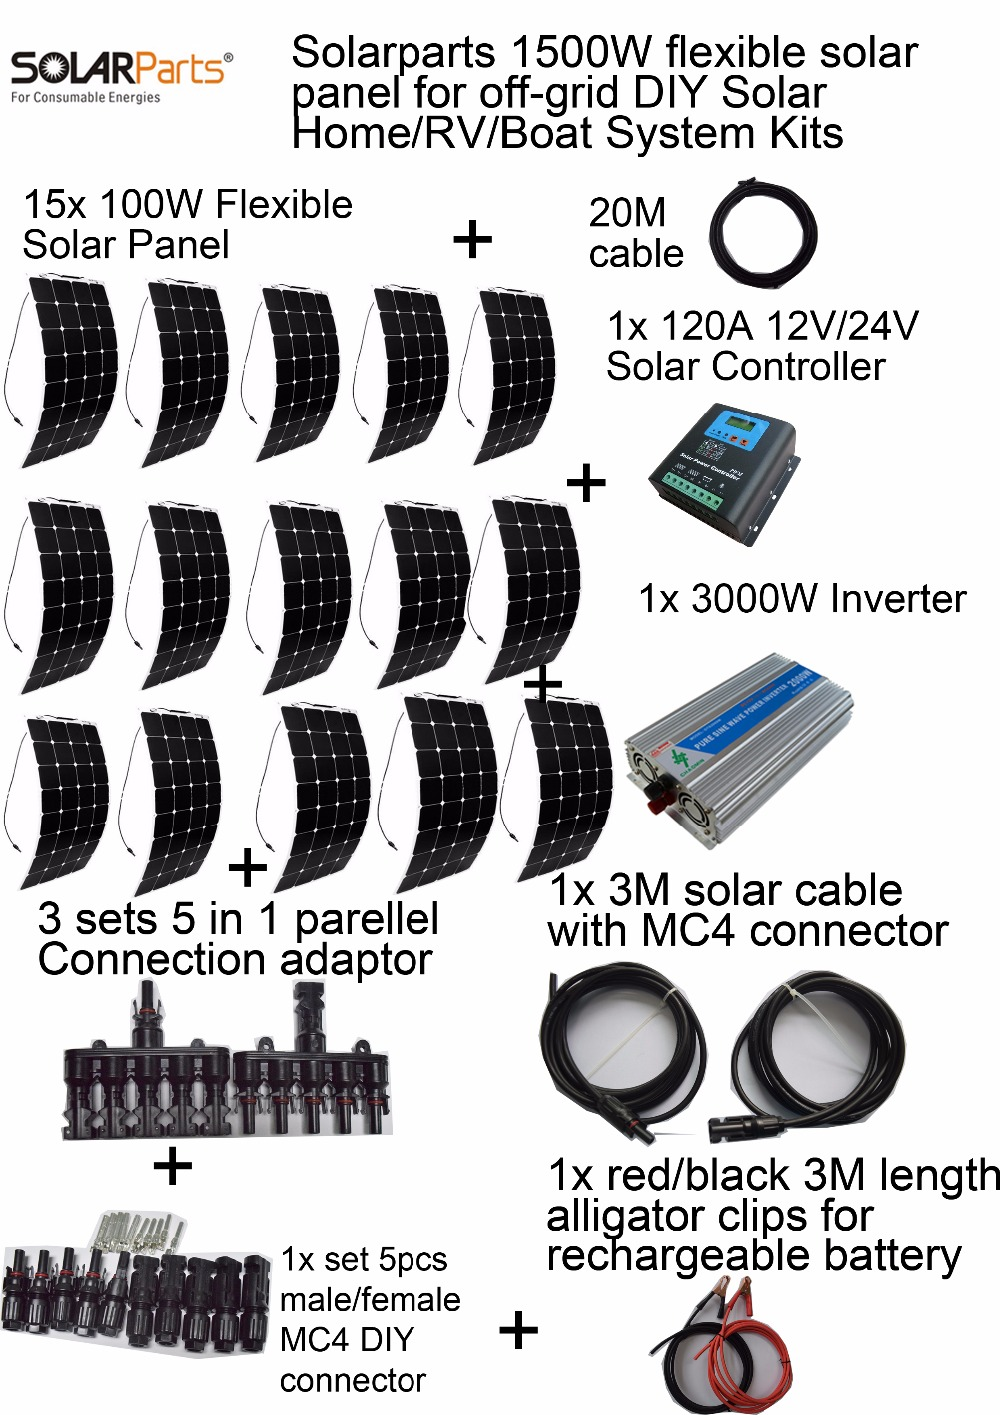 Boguang 1500W off-grid Solar System KITS flexible solar panel +controller+inverter+cable+adaptor for RV/Marine/Camping/Home . dc house usa uk stock 300w off grid solar system kits new 100w solar module 12v home 20a controller 1000w inverter